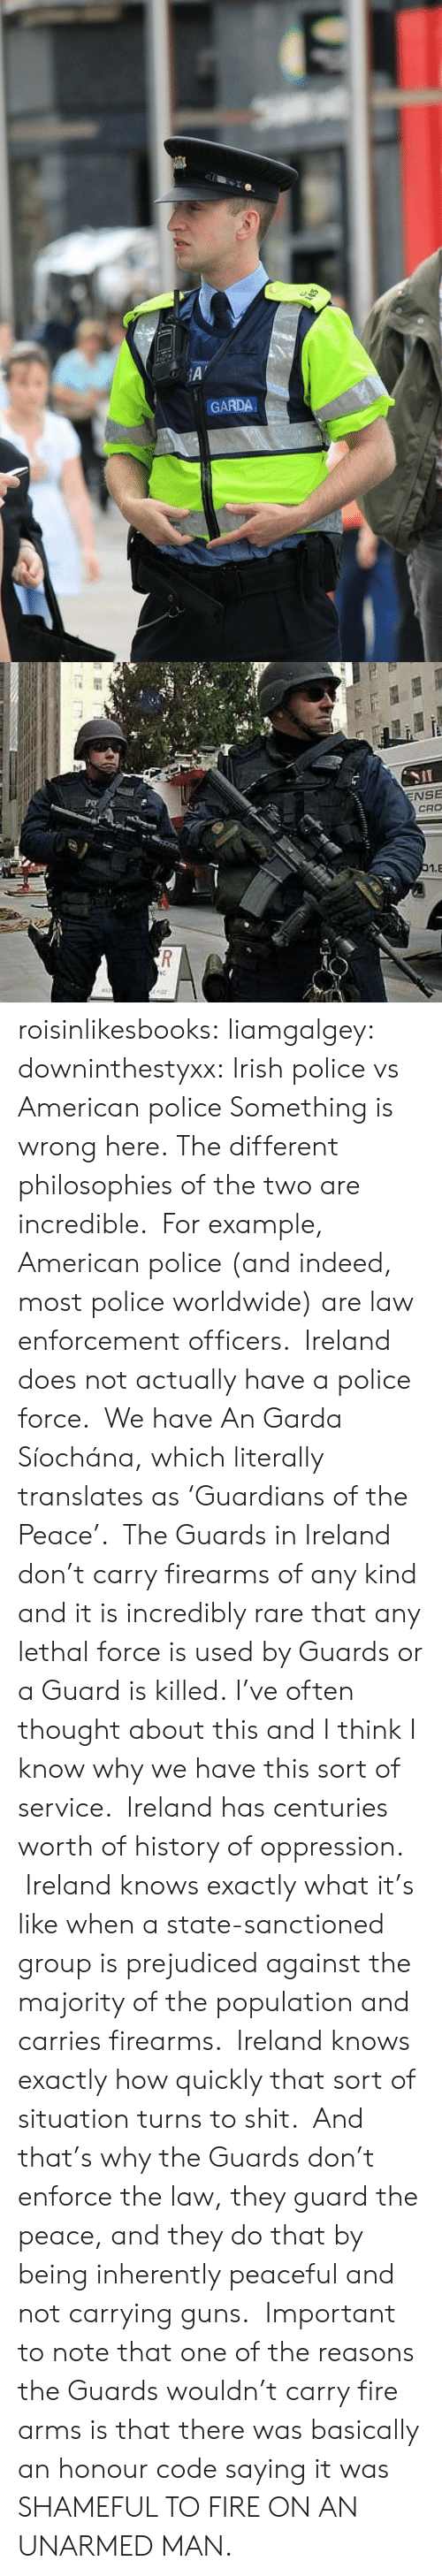 Unarmed: A'  GARDA   ENSE  CRO  01.E  RE  T roisinlikesbooks:  liamgalgey:  downinthestyxx:  Irish police vs American police Something is wrong here.  The different philosophies of the two are incredible. For example, American police (and indeed, most police worldwide) are law enforcement officers. Ireland does not actually have a police force. We have An Garda Síochána, which literally translates as 'Guardians of the Peace'. The Guards in Ireland don't carry firearms of any kind and it is incredibly rare that any lethal force is used by Guards or a Guard is killed. I've often thought about this and I think I know why we have this sort of service. Ireland has centuries worth of history of oppression. Ireland knows exactly what it's like when a state-sanctioned group is prejudiced against the majority of the population and carries firearms. Ireland knows exactly how quickly that sort of situation turns to shit. And that's why the Guards don't enforce the law, they guard the peace, and they do that by being inherently peaceful and not carrying guns.  Important to note that one of the reasons the Guards wouldn't carry fire arms is that there was basically an honour code saying it was SHAMEFUL TO FIRE ON AN UNARMED MAN.